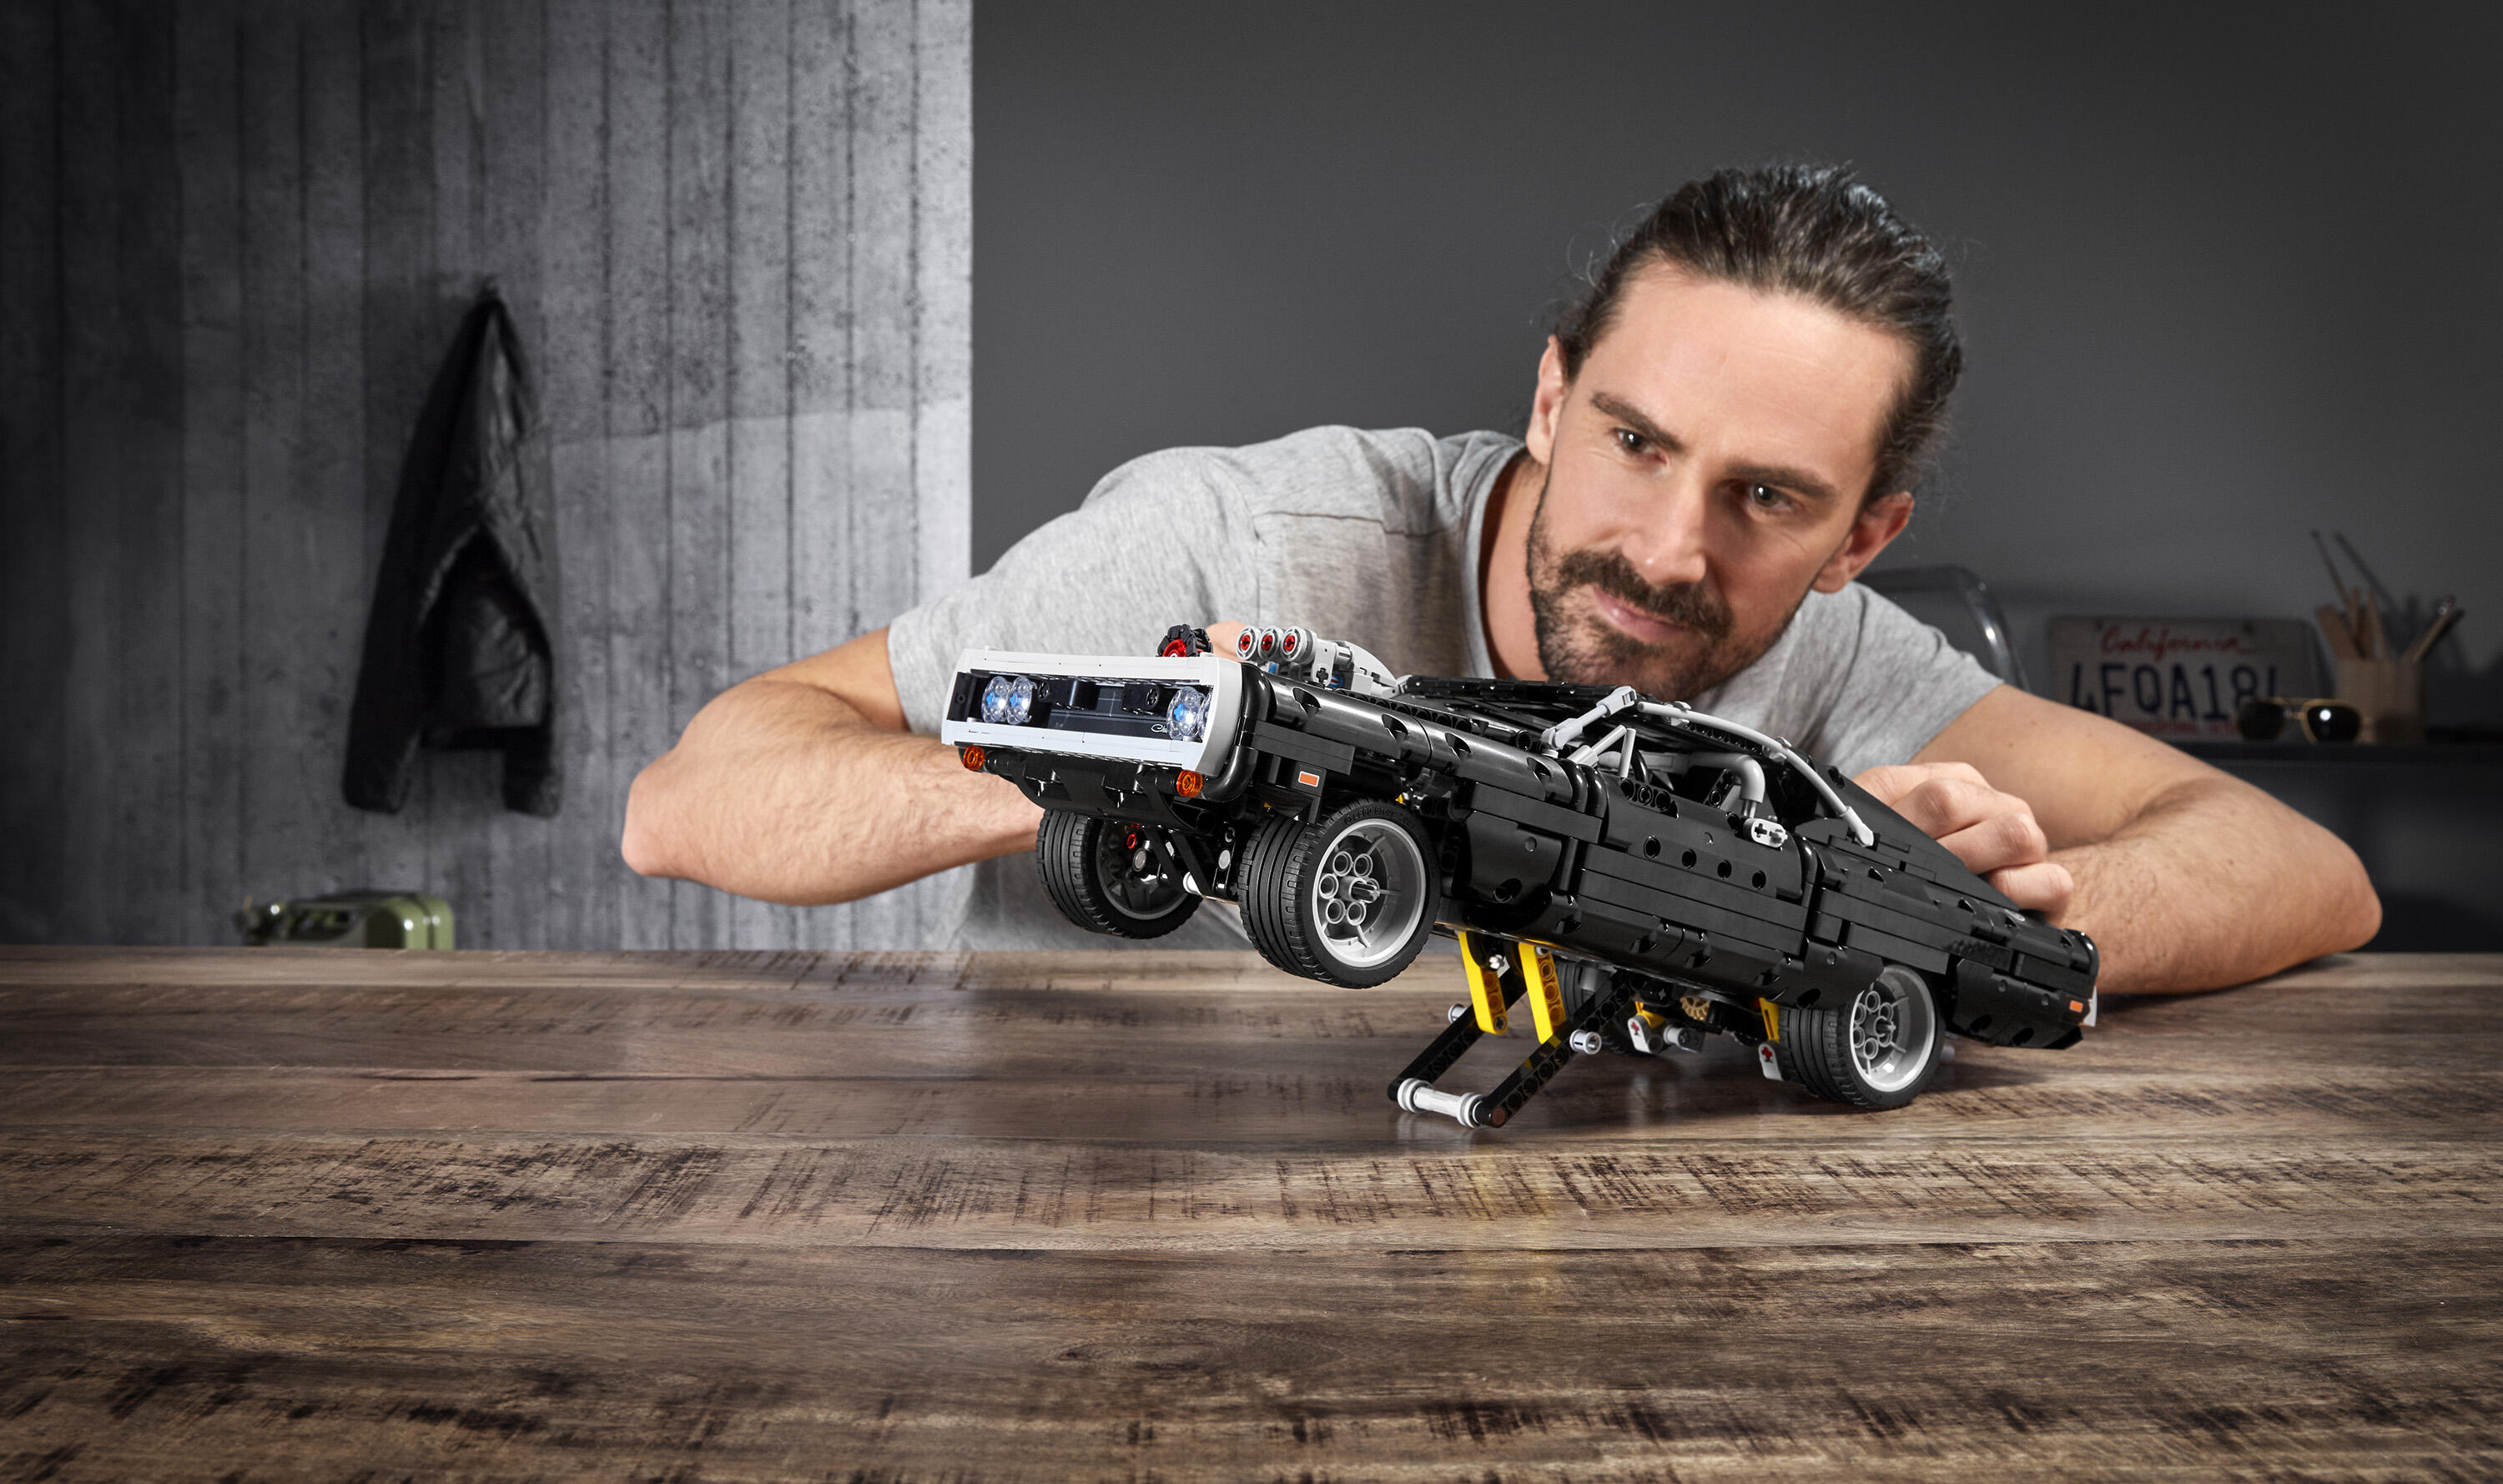 Lego Technic Dodge Charger from Fast and Furious